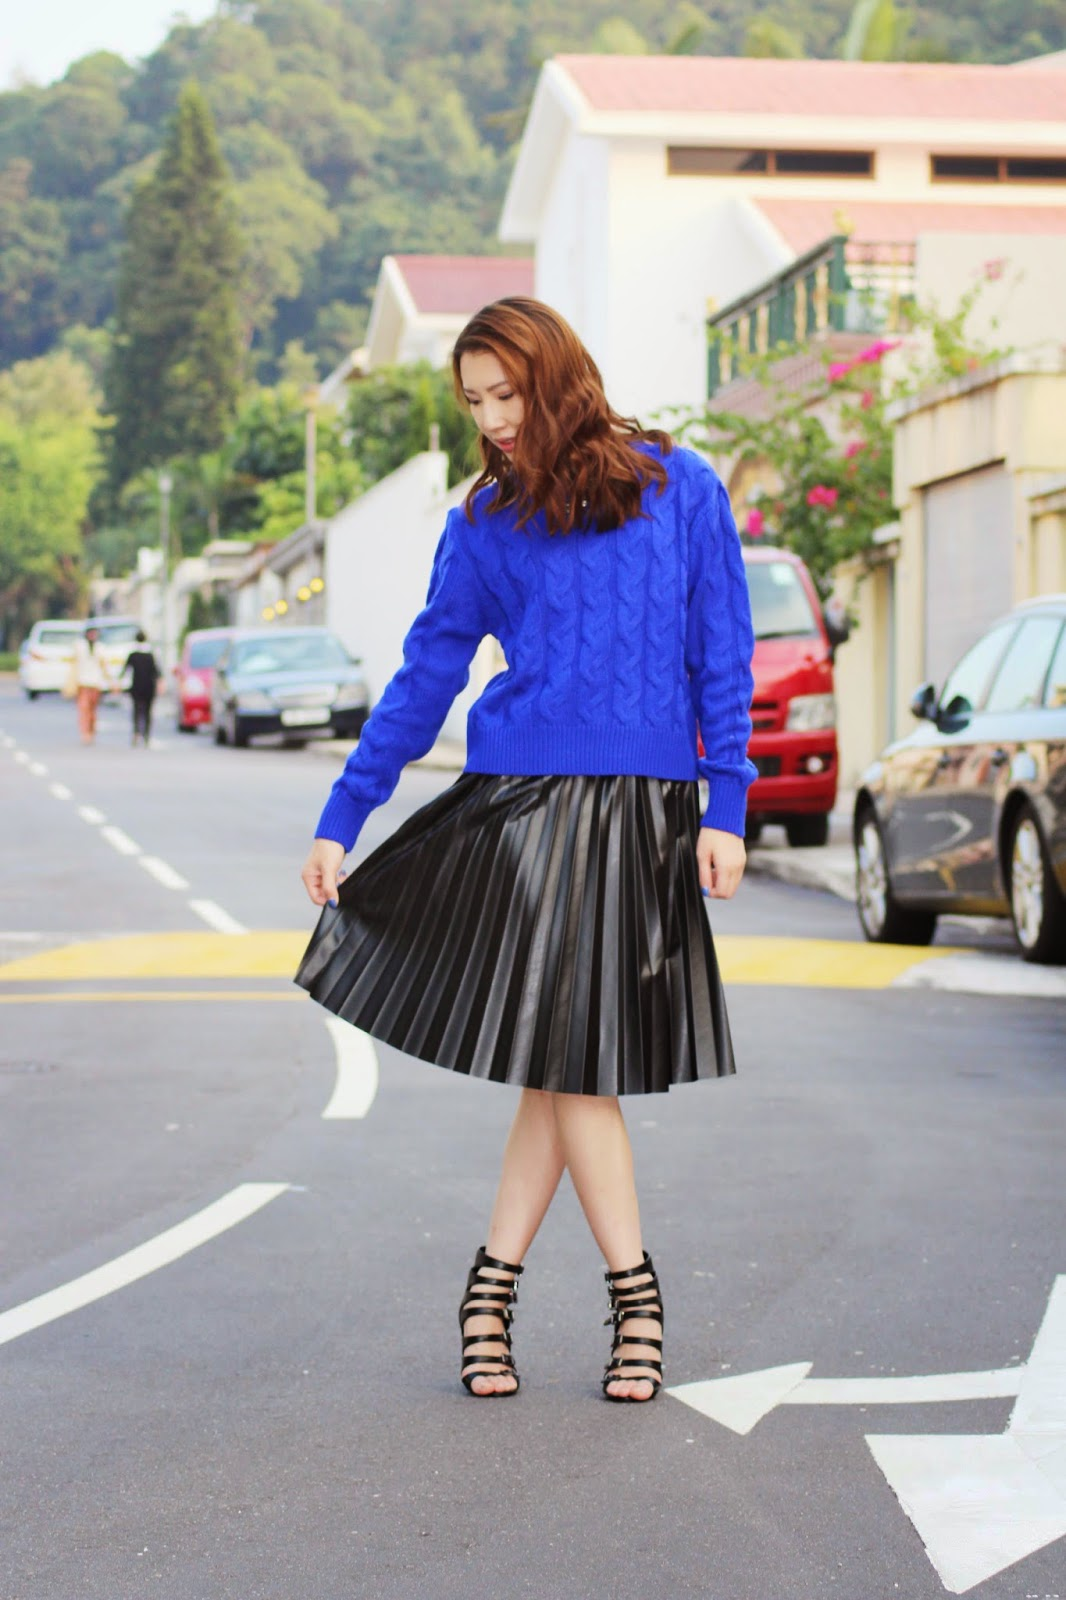 Styling blue sweater with black pleated faux leather midi skirt and strappy heeled sandals